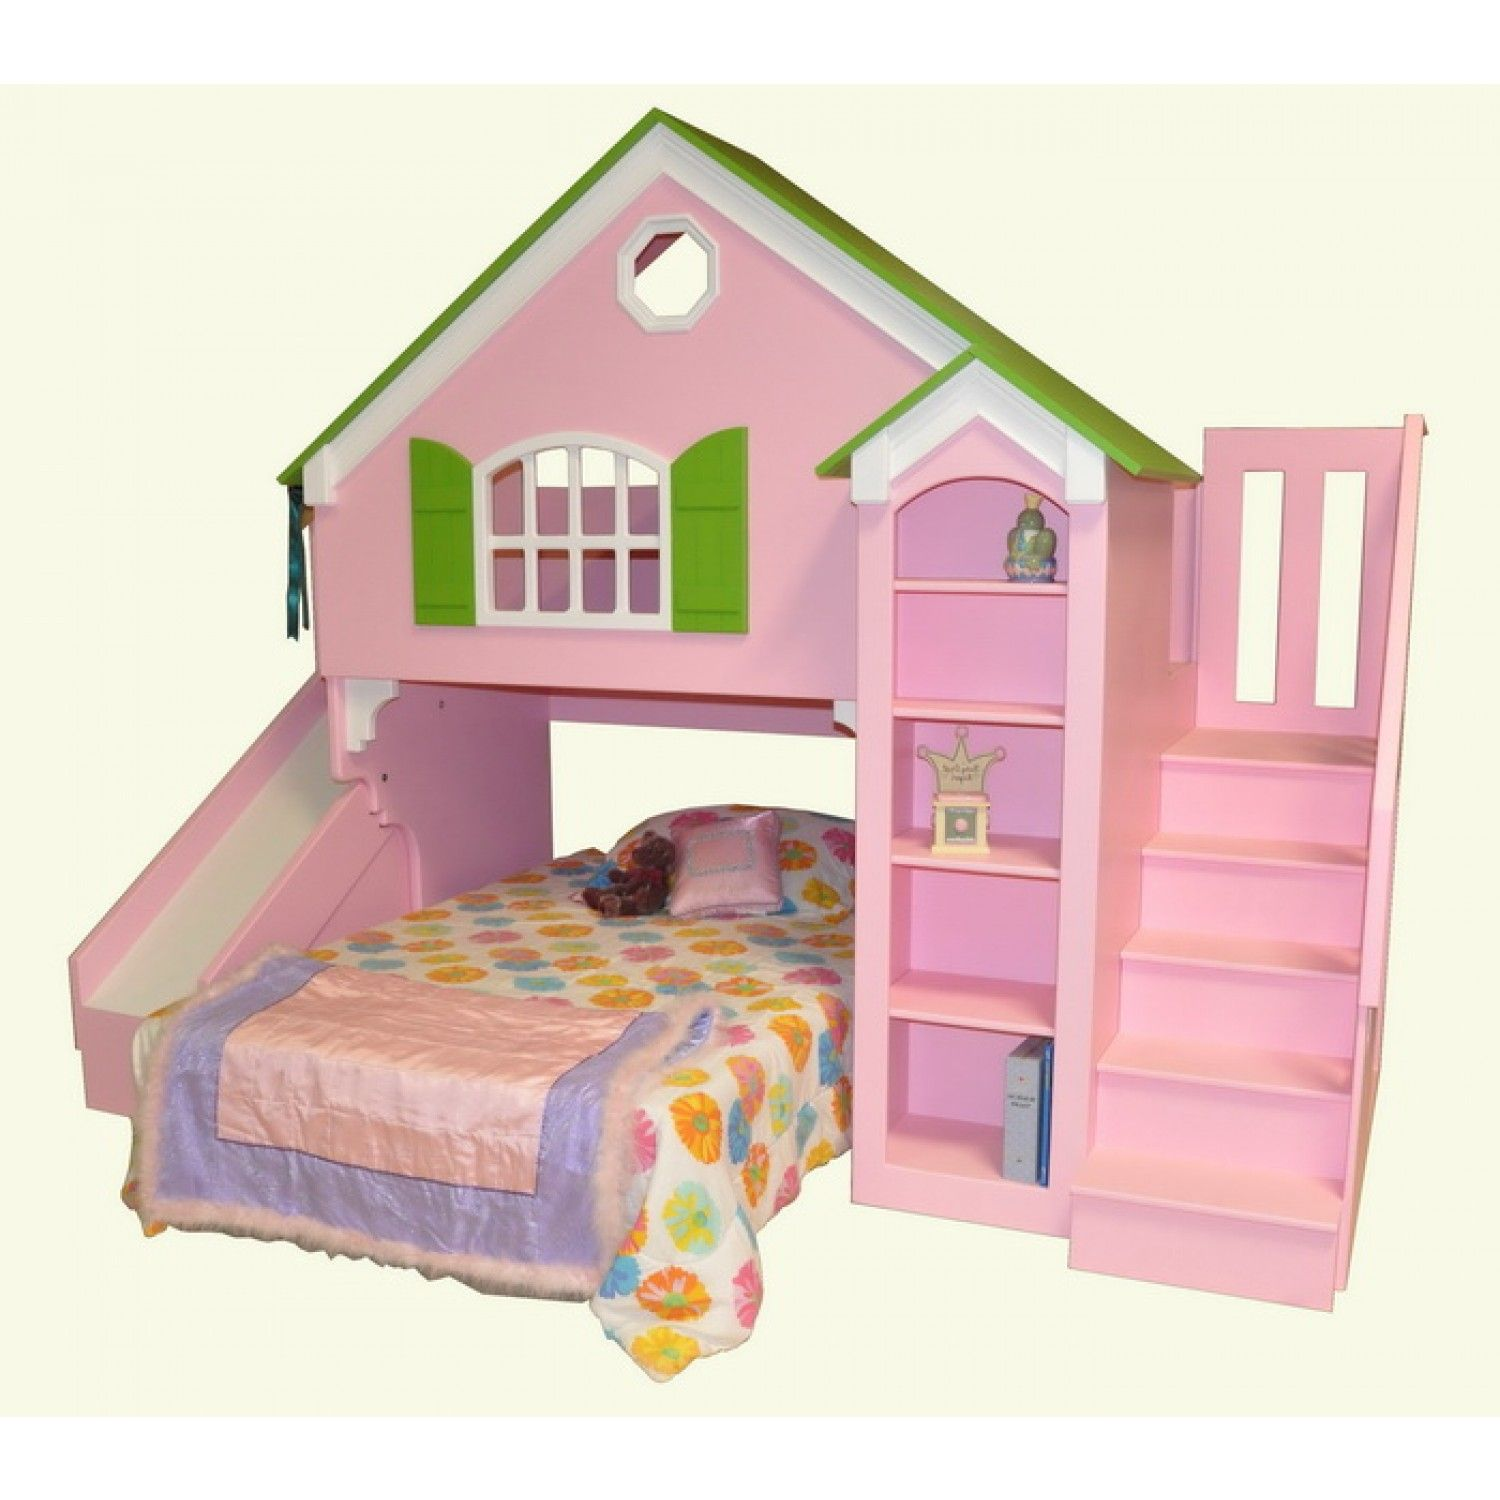 Twin Bed With Slide Part - 21: Cool Kids Bunk Beds With Slide : Dollhouse Bunk Bed Shown With Optional  Slide And Staircase. Best Kids Bunk Beds With Slide,Cool Kids Bunk Beds  With Slide ...